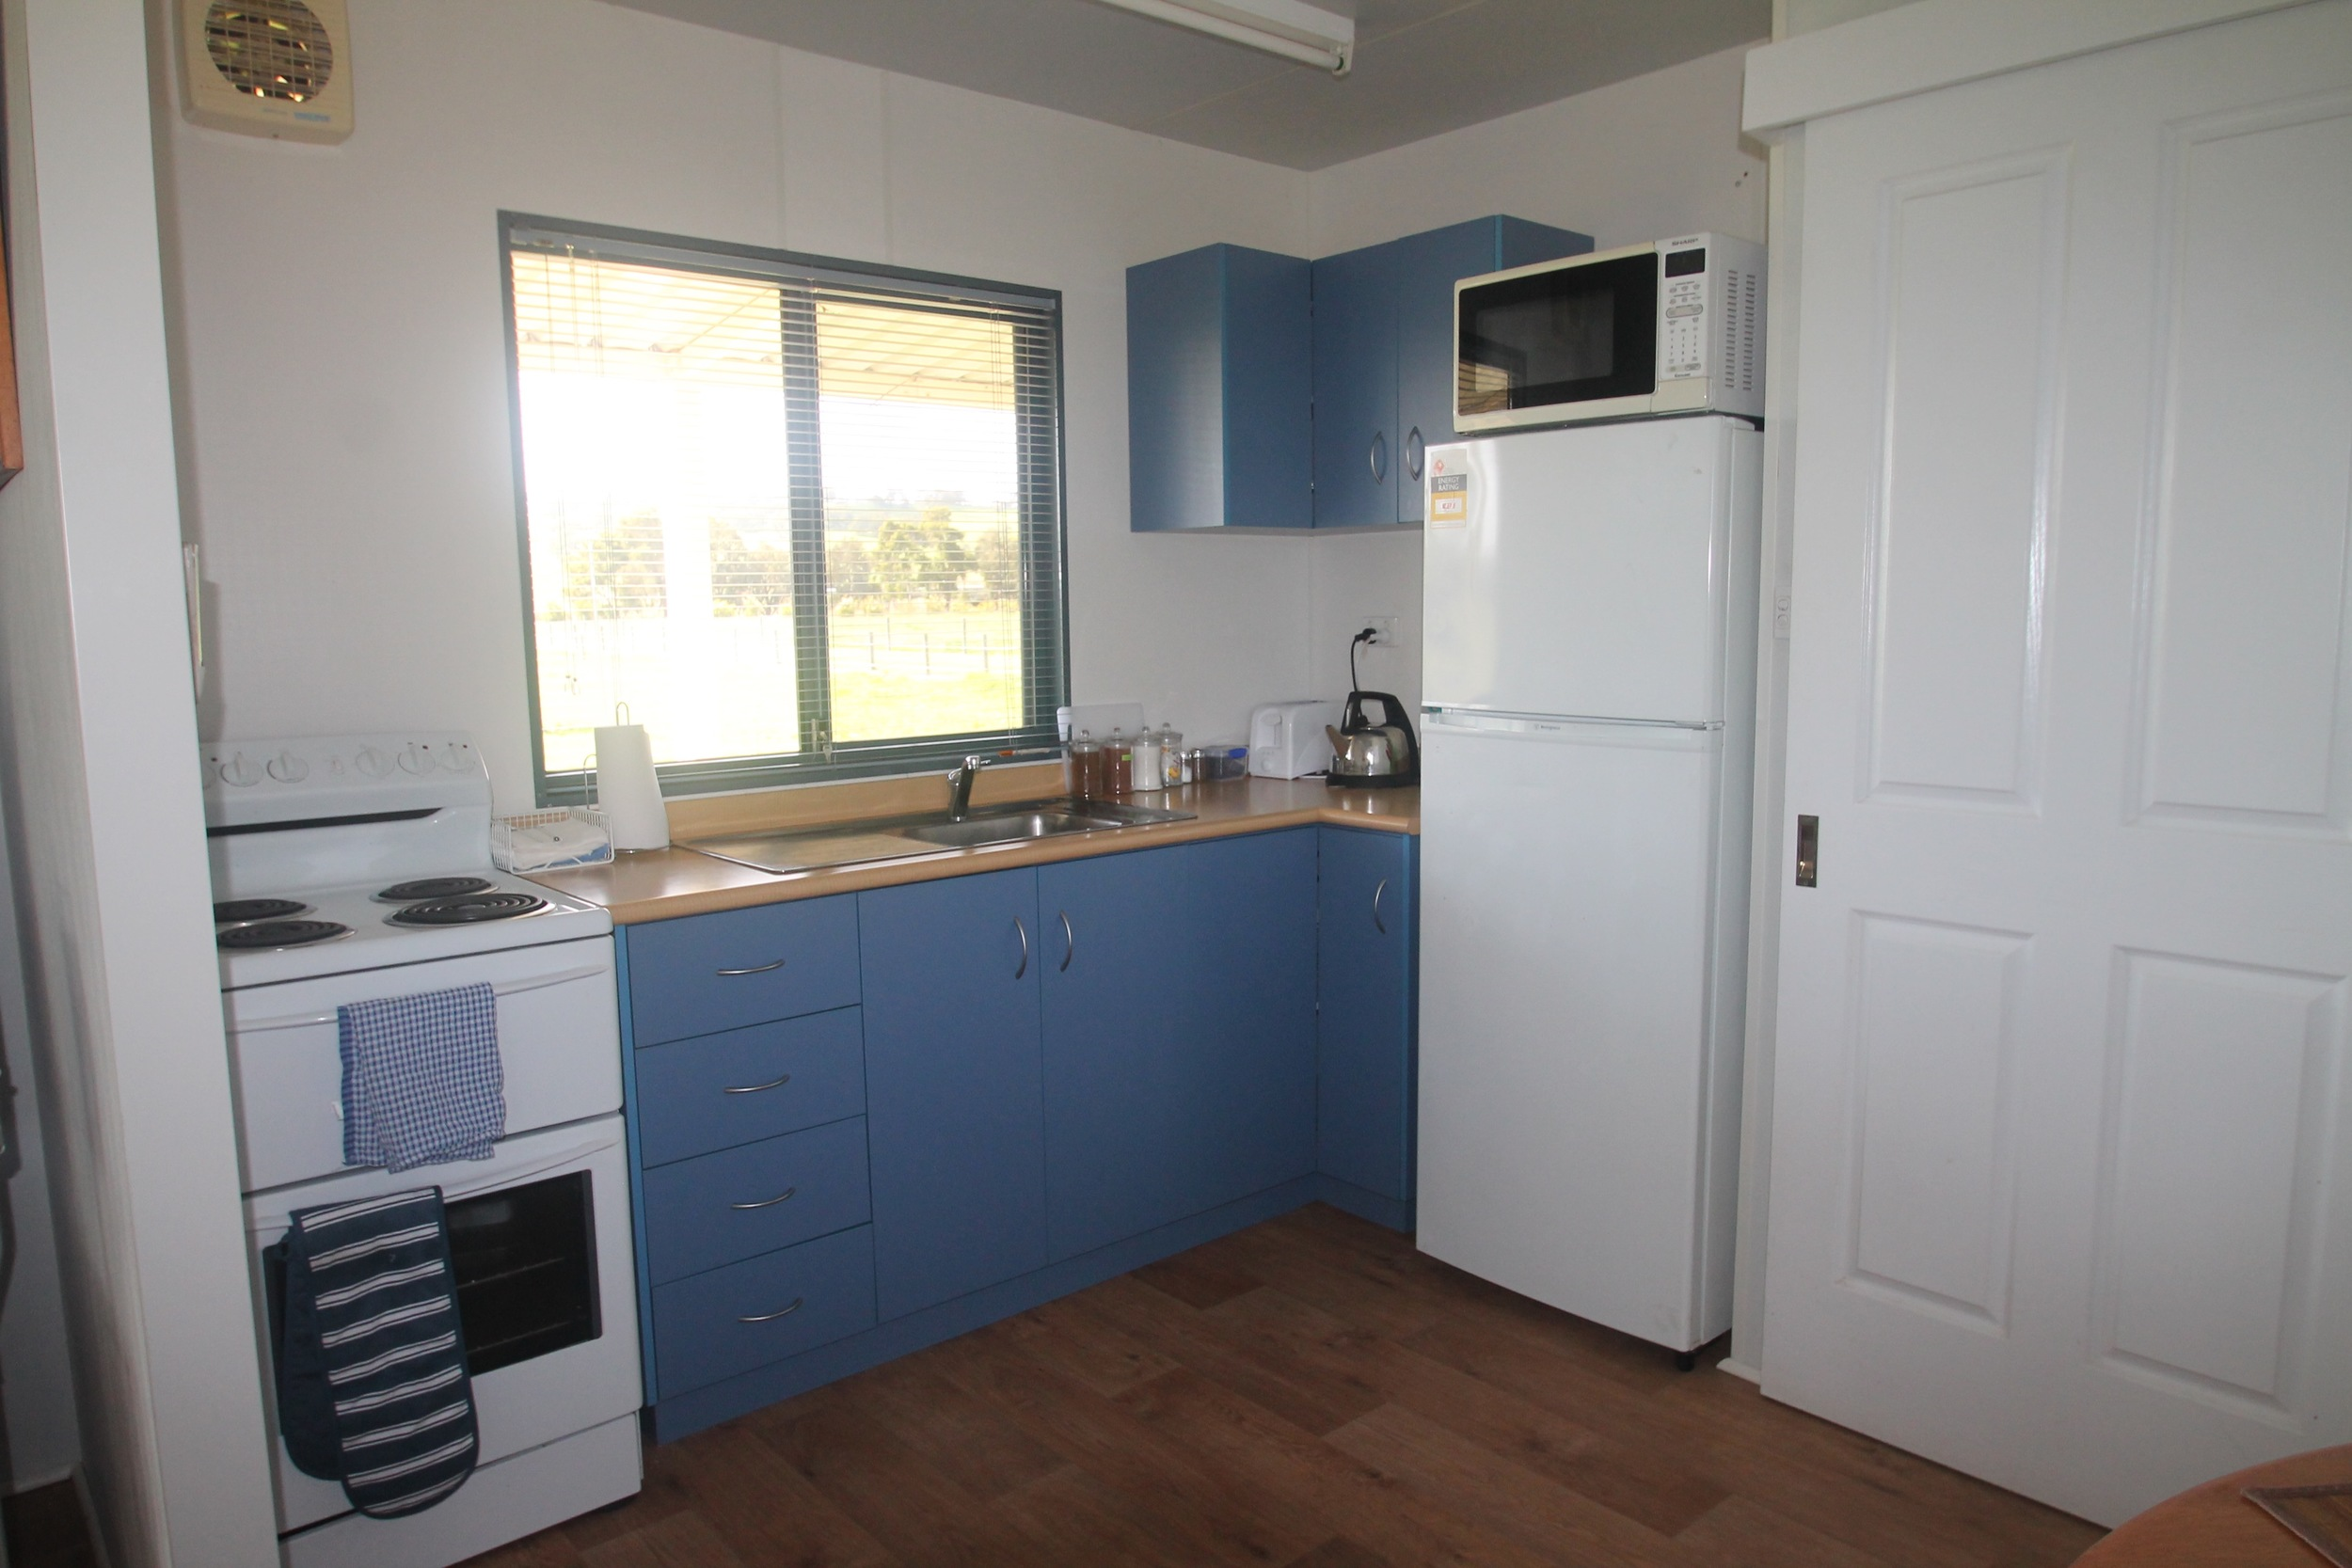 Fully self contained kitchen with full cooking facilities.